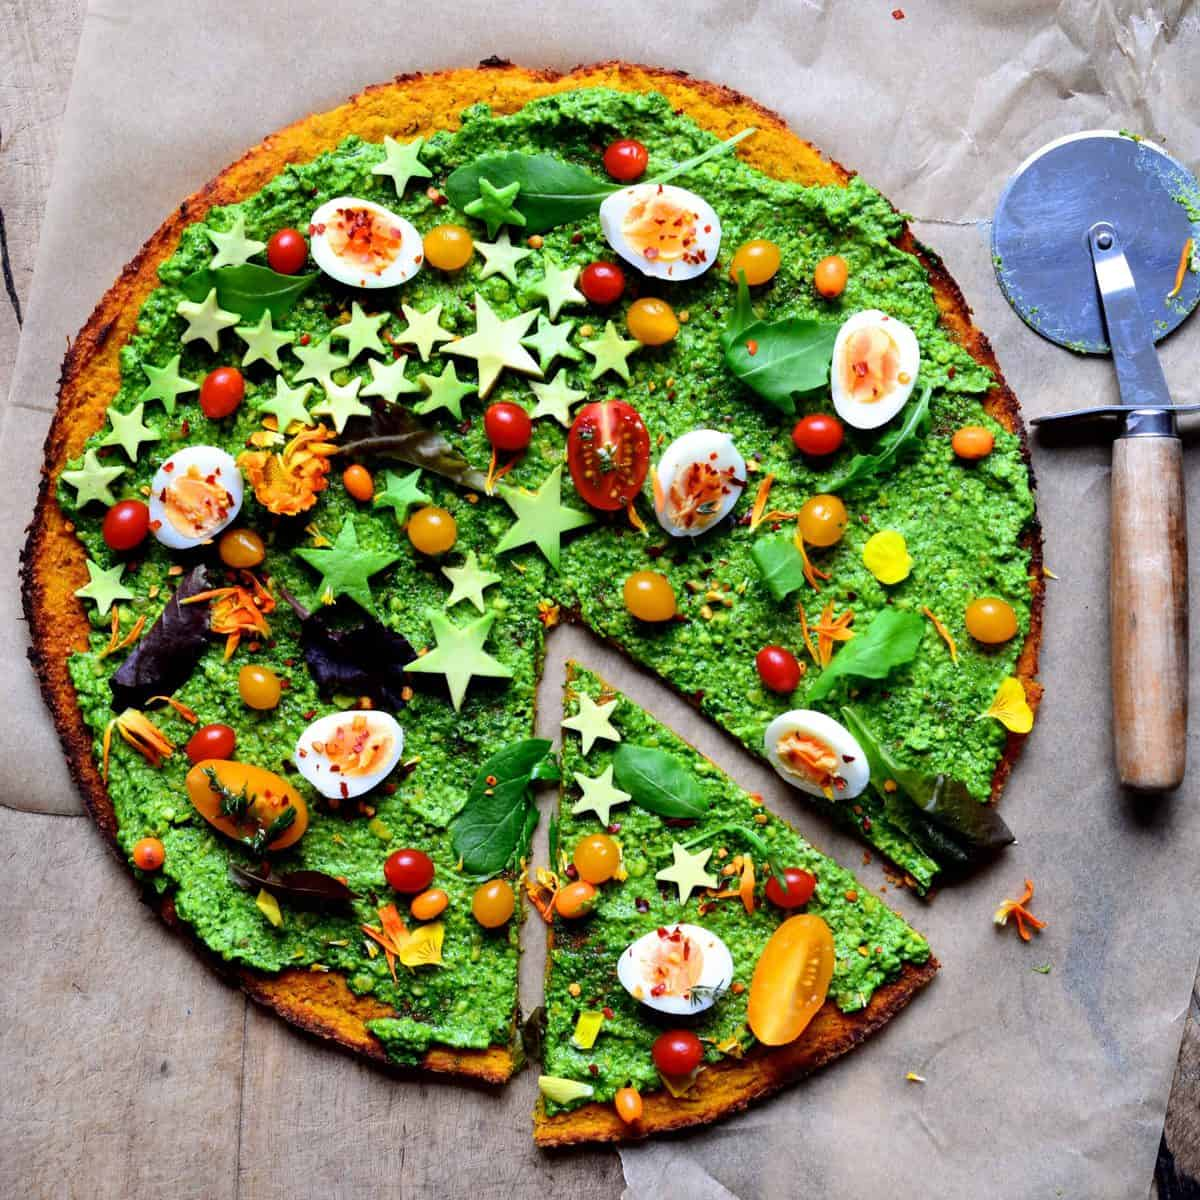 Butternut Squash base pizza with green sauce